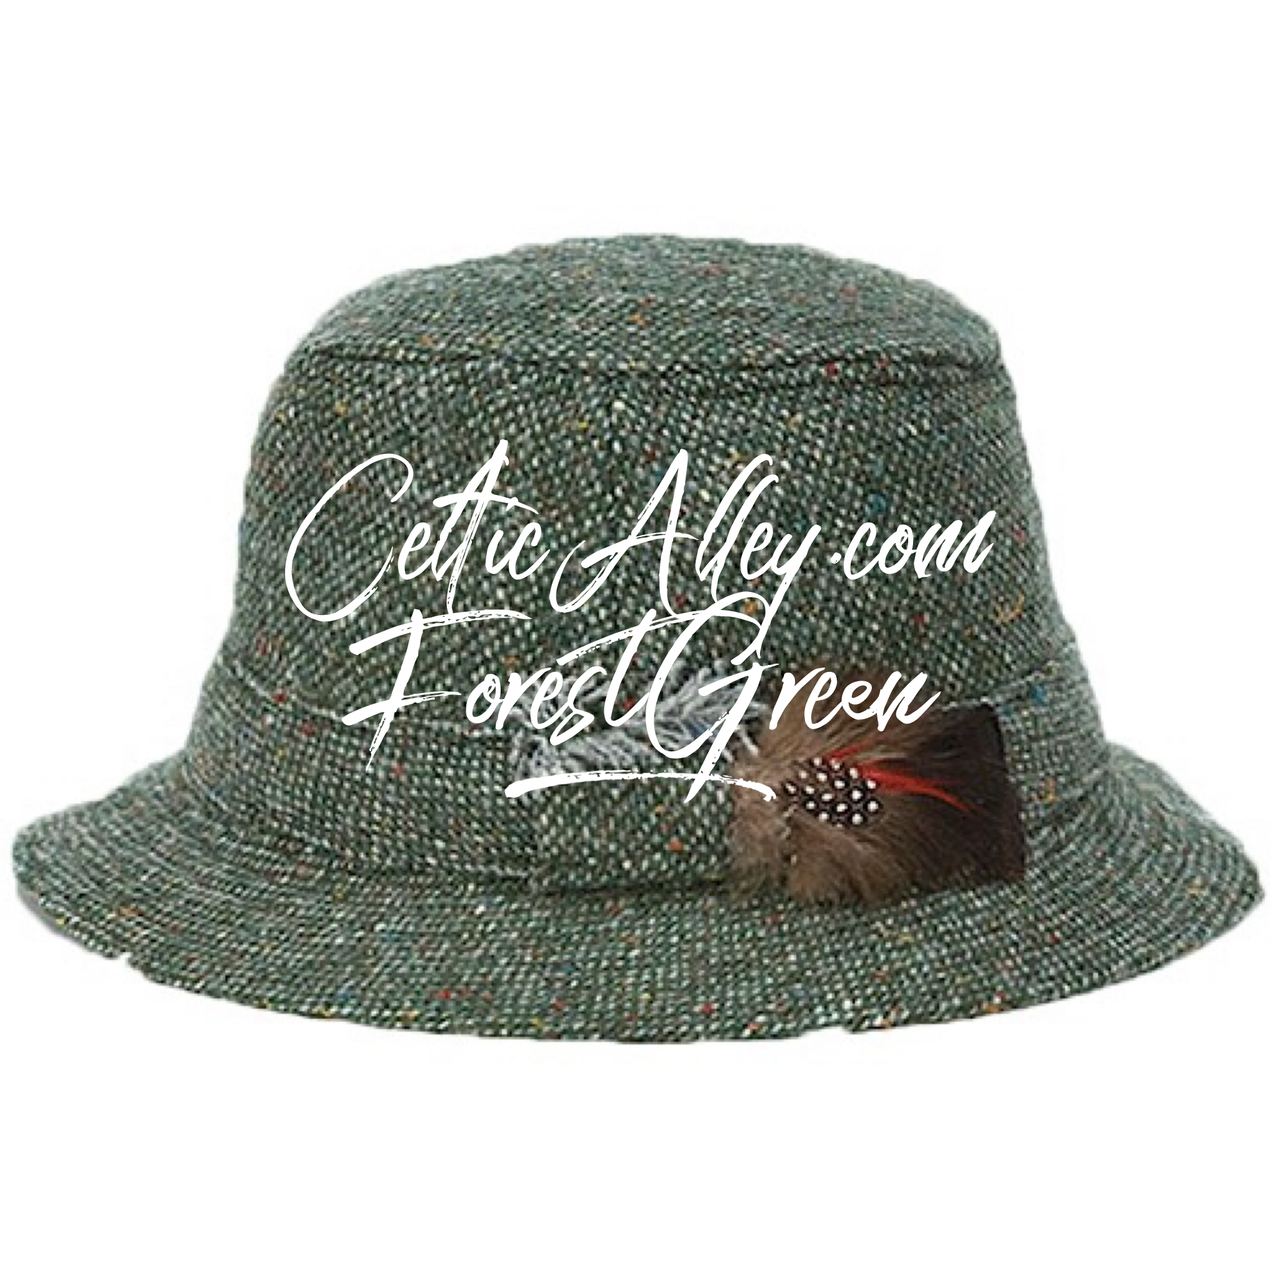 6b3a1a3e Hanna Hat Donegal IRISH Tweed Walking Hat in FOREST GREEN HandMade in  Ireland